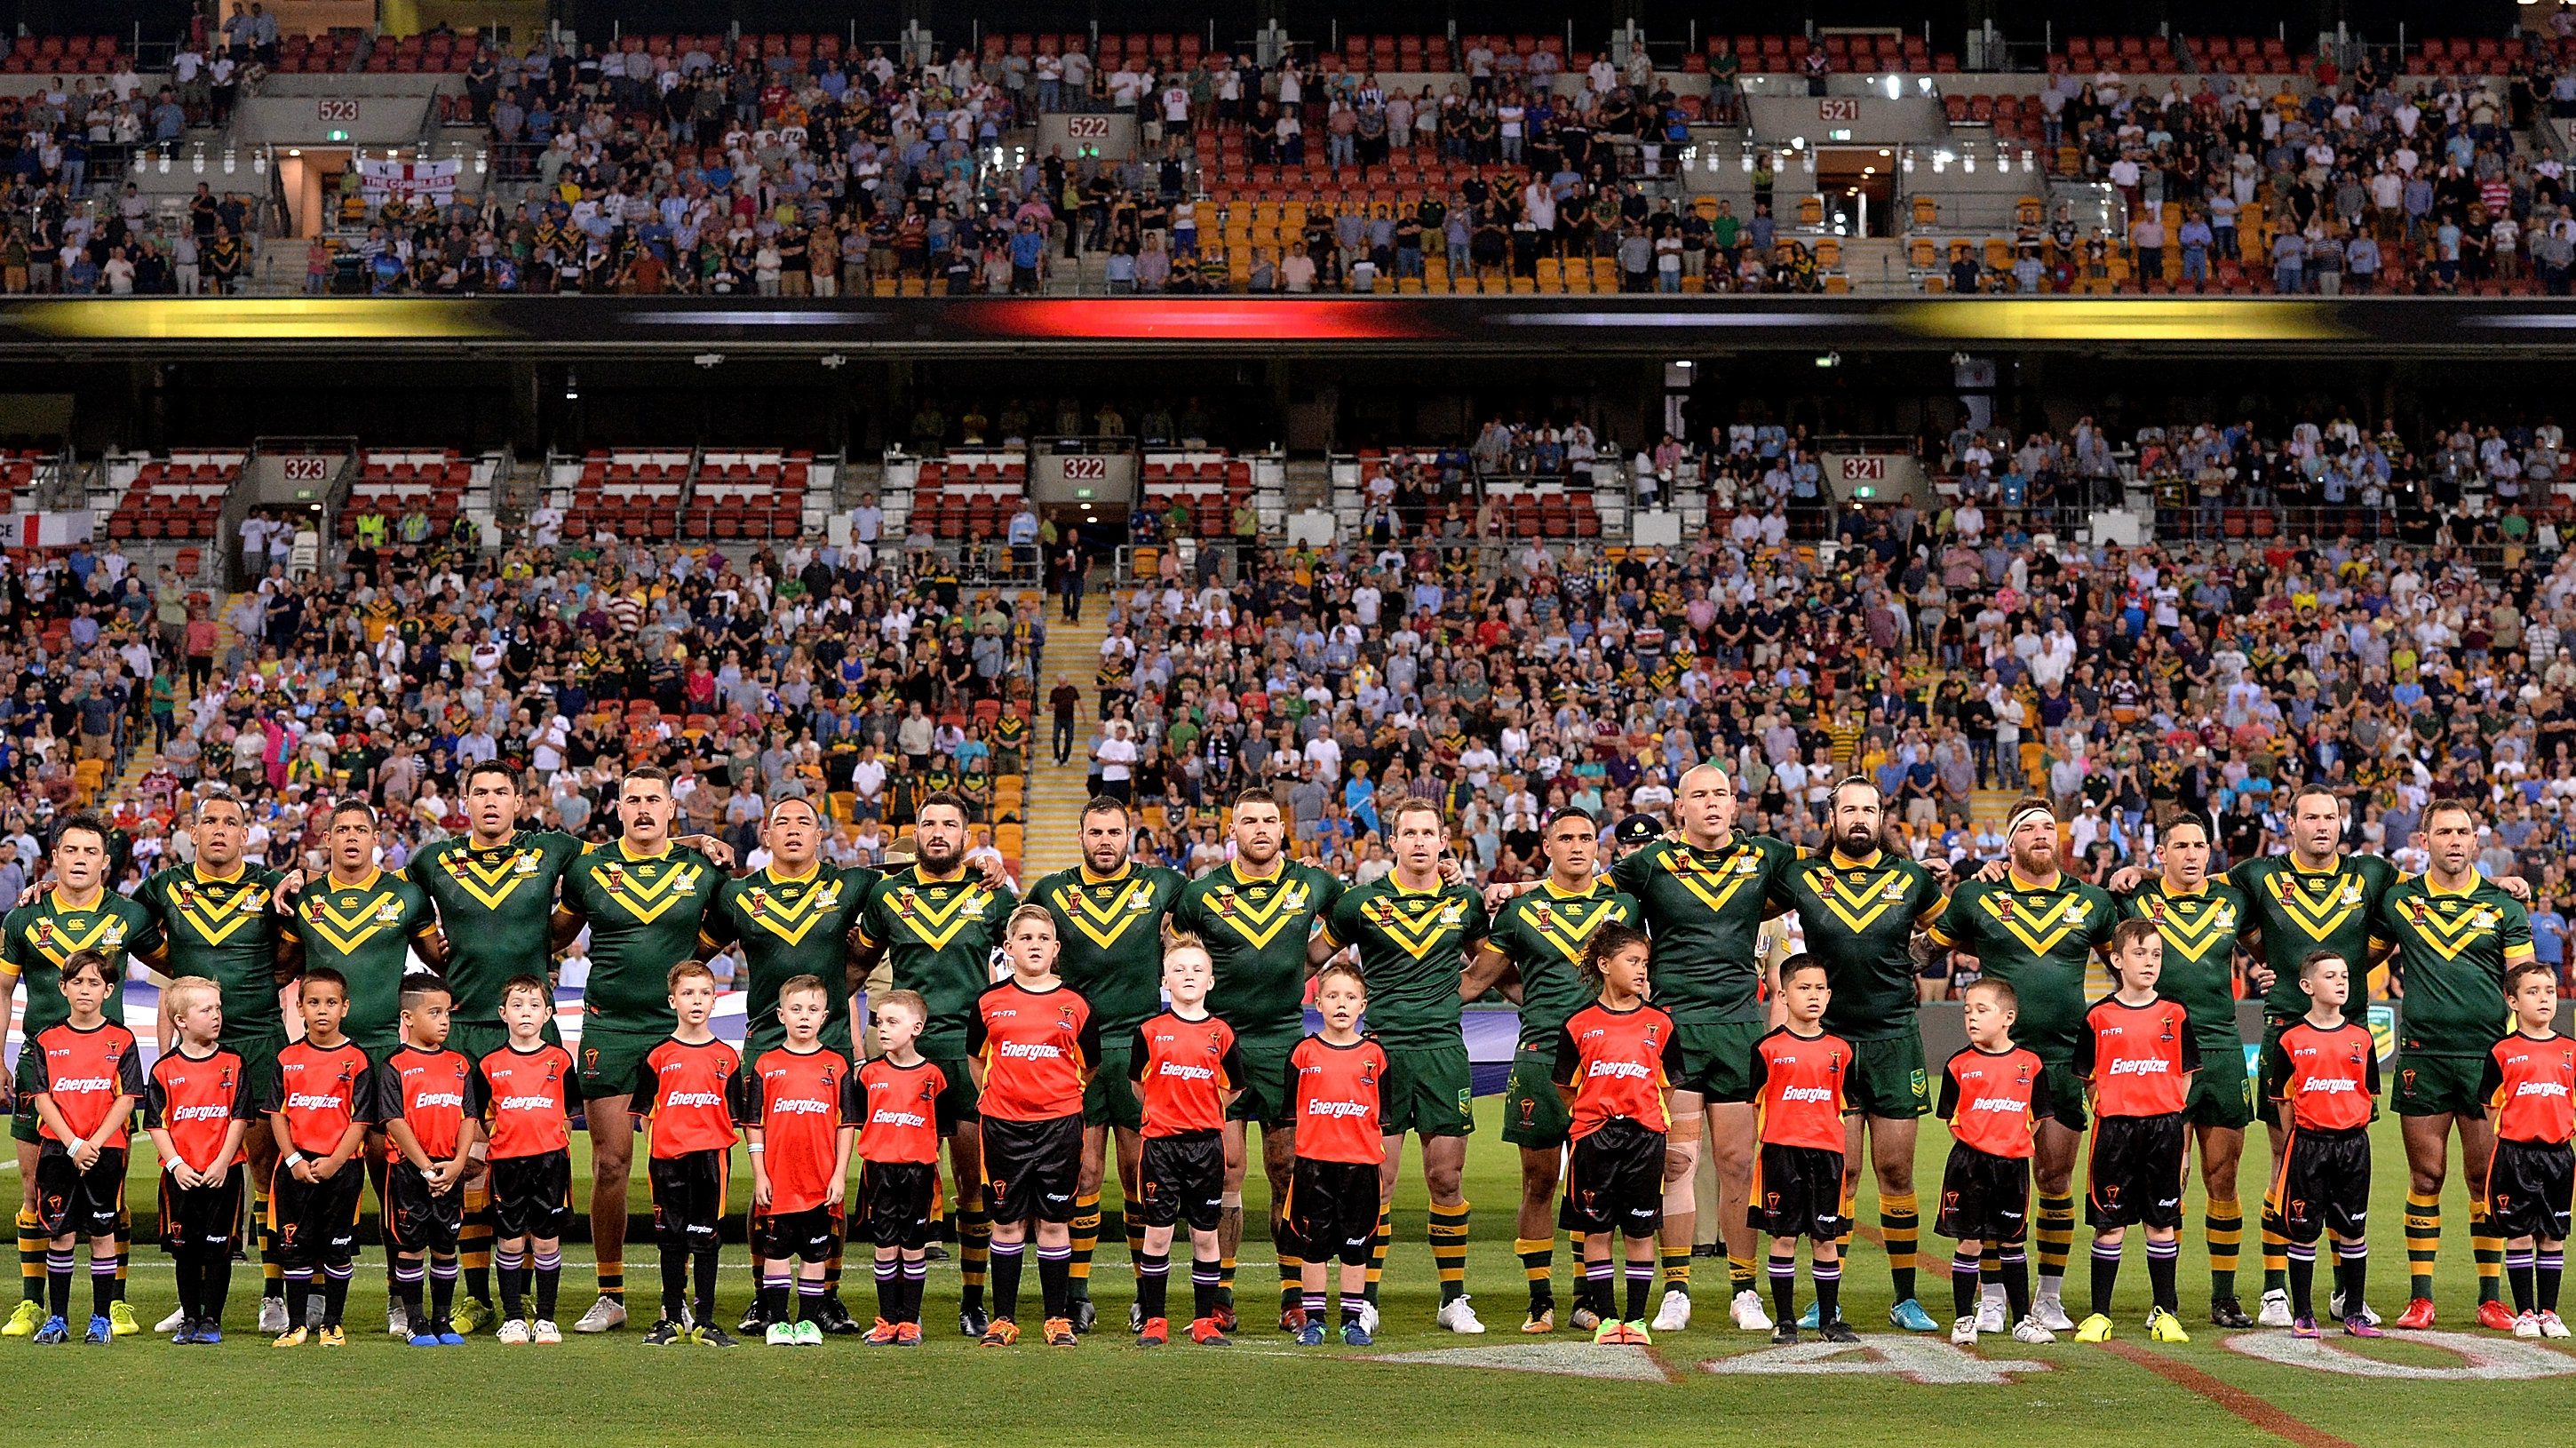 2017 Rugby League World Cup Final: When is it, who's involved, and how to watch? | League ...